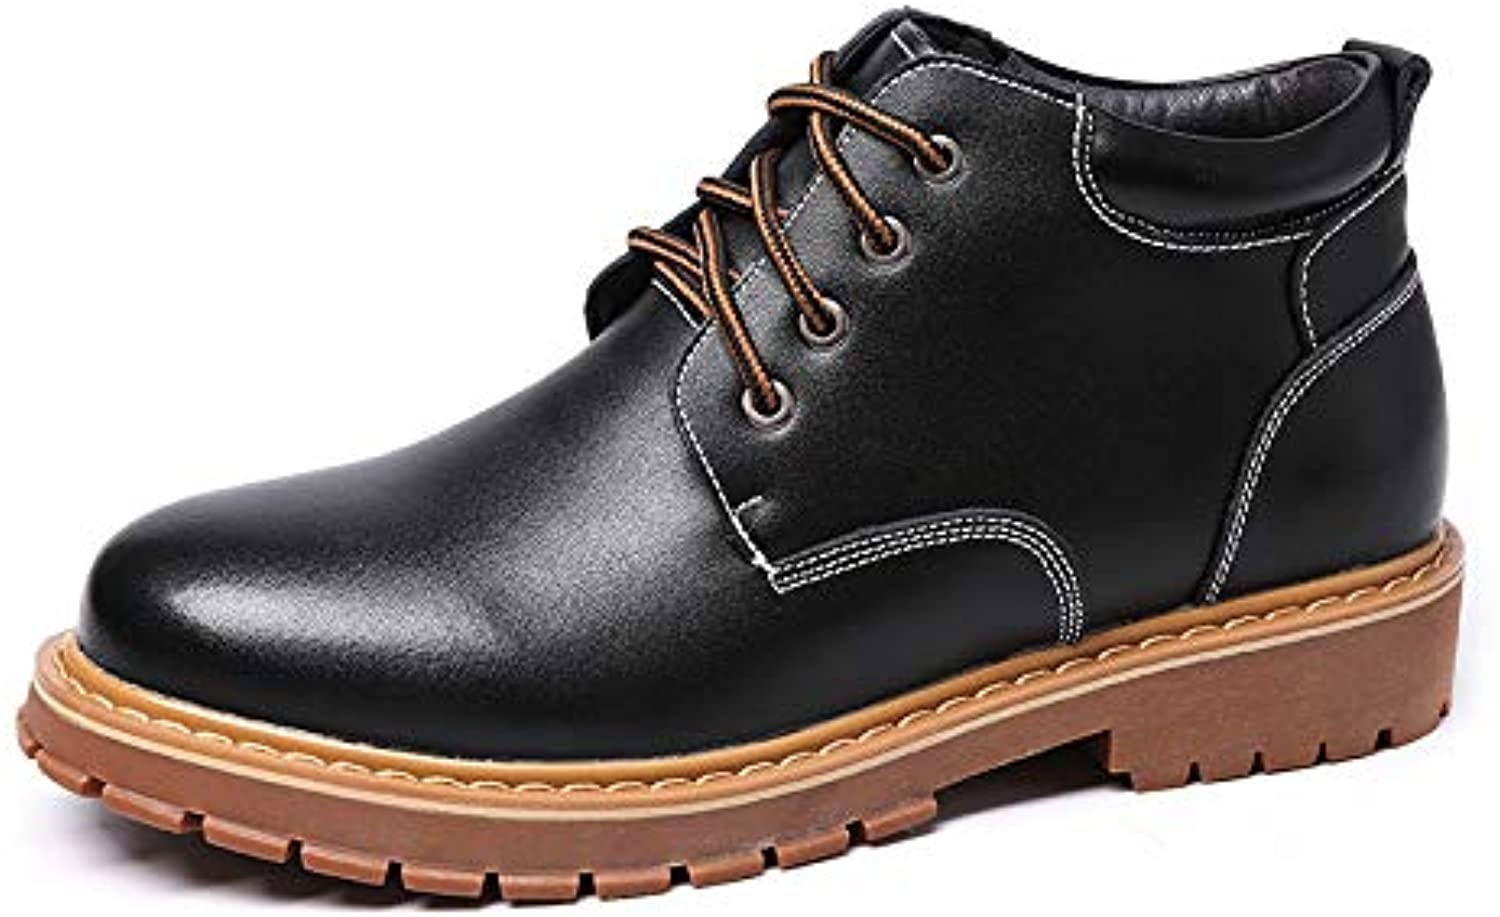 GLSHI Men Autumn Winter Martin Boots Fashion Outdoor High Top Tooling Shoes Warm Cotton Shoes Large Size